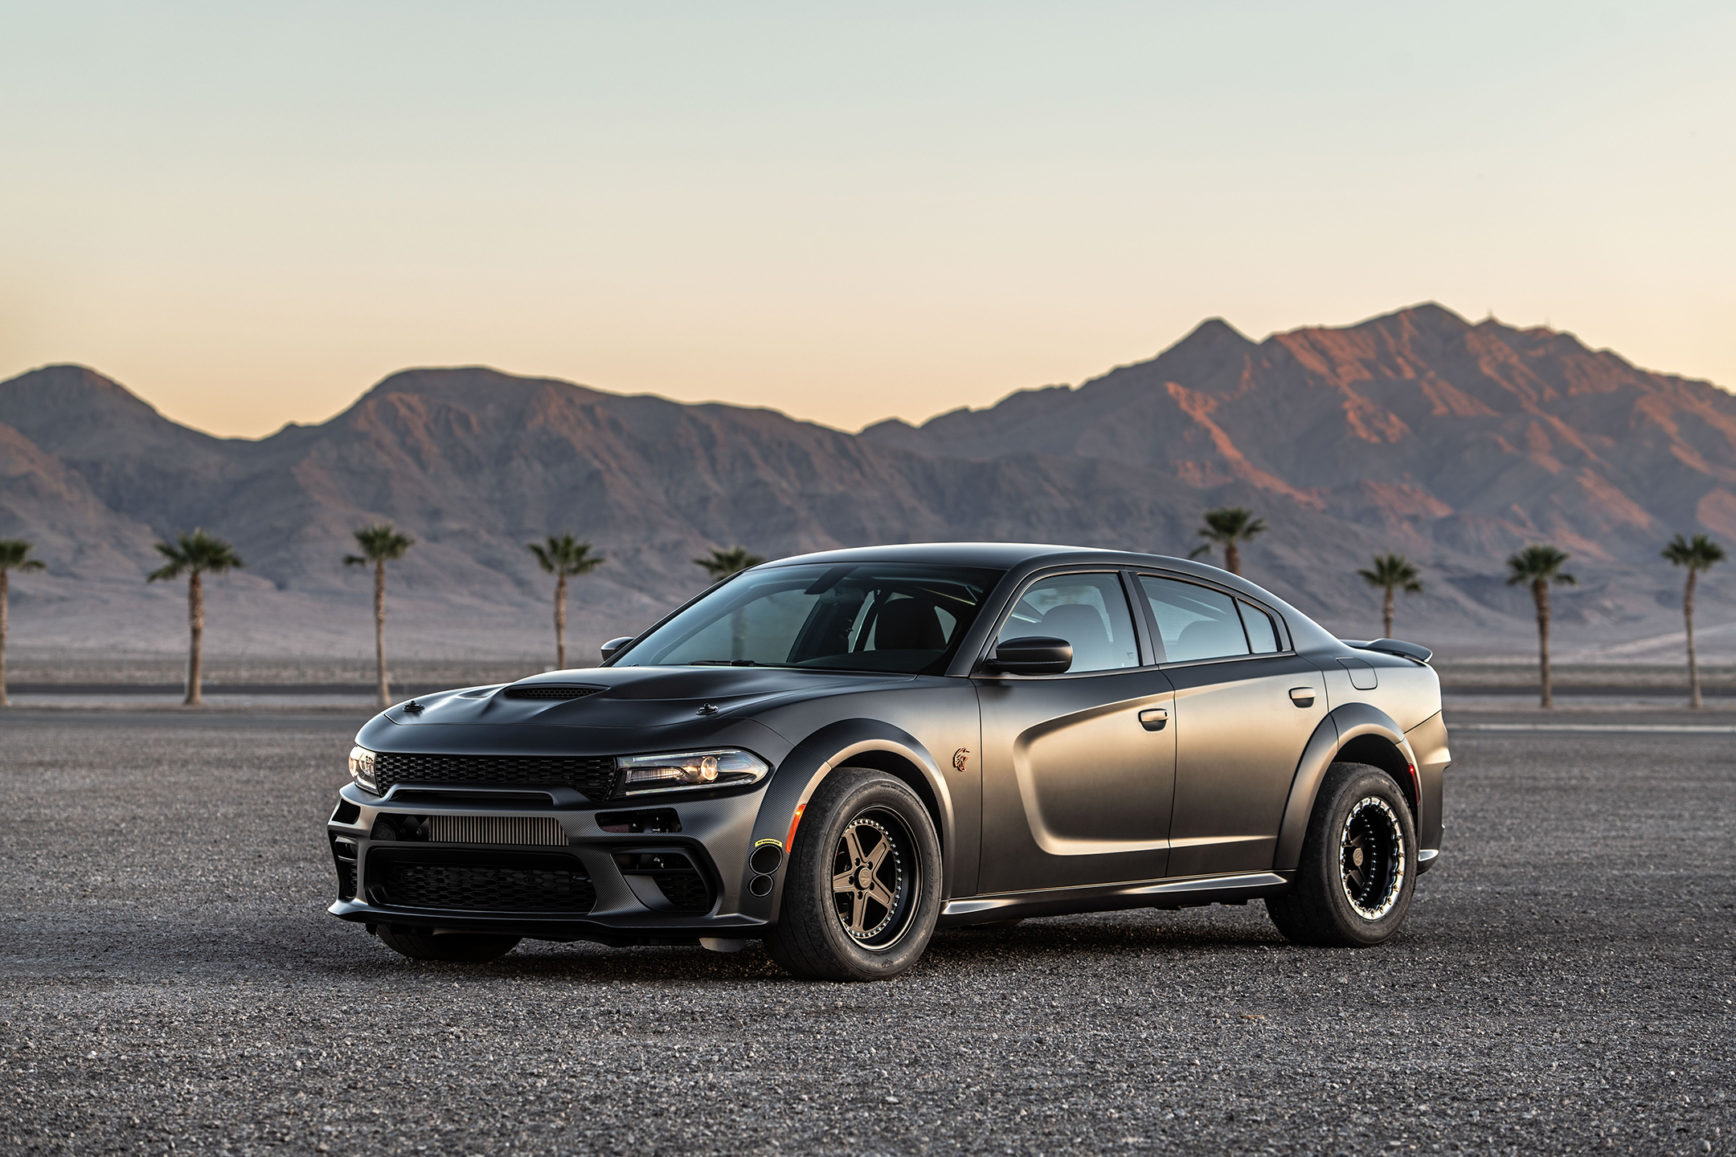 SpeedKore Dodge Charger - 2019 - front side-face / profil avant